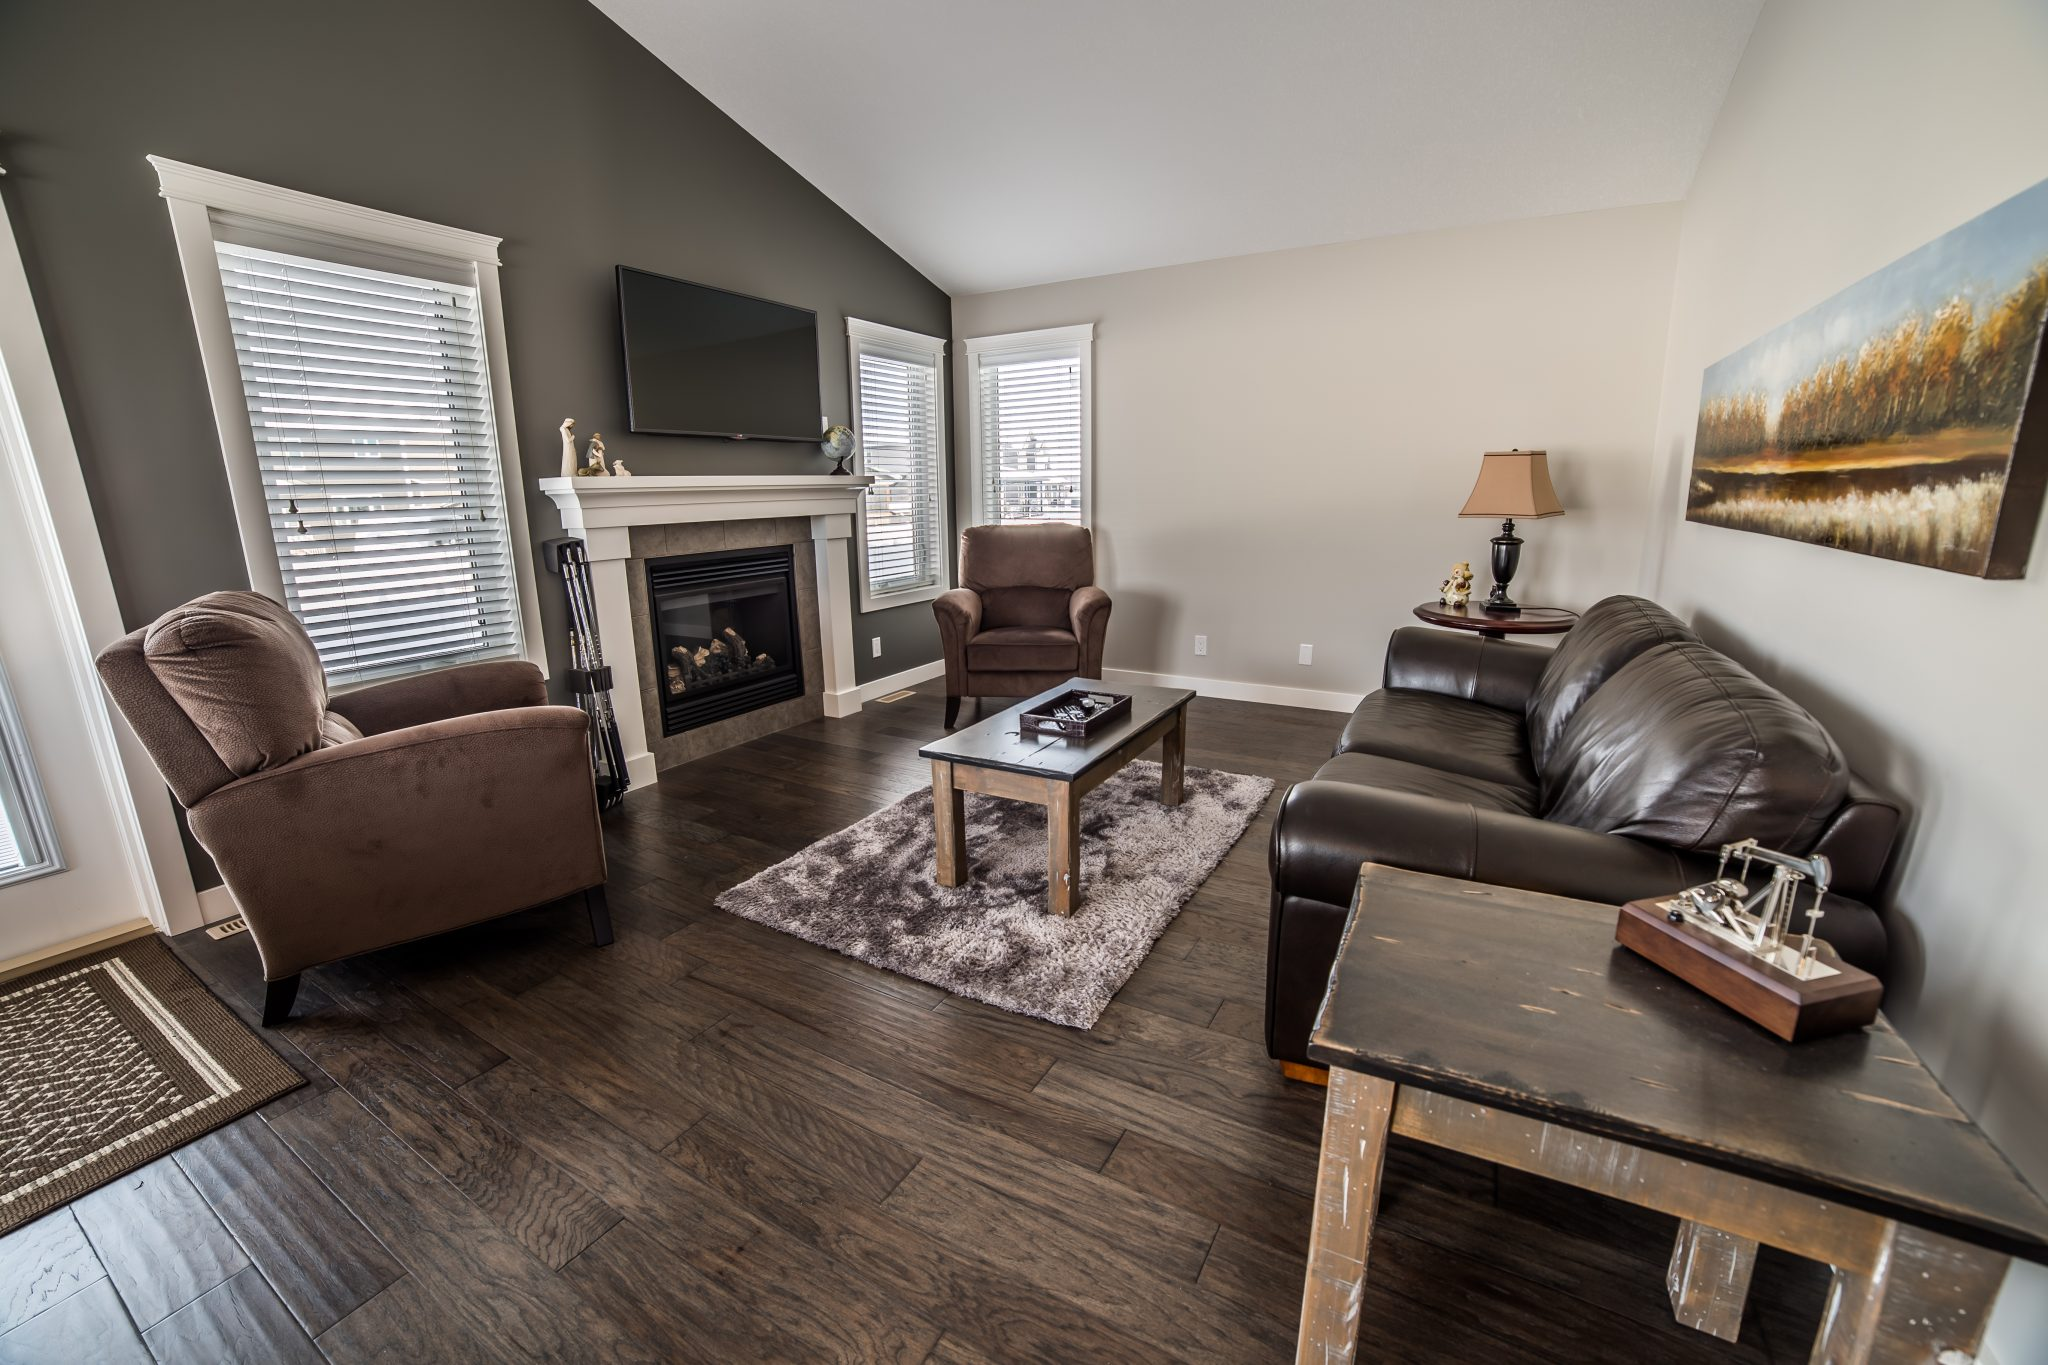 Interior Real Estate Photography | Our Photographers | Photo Studio Kelowna 1